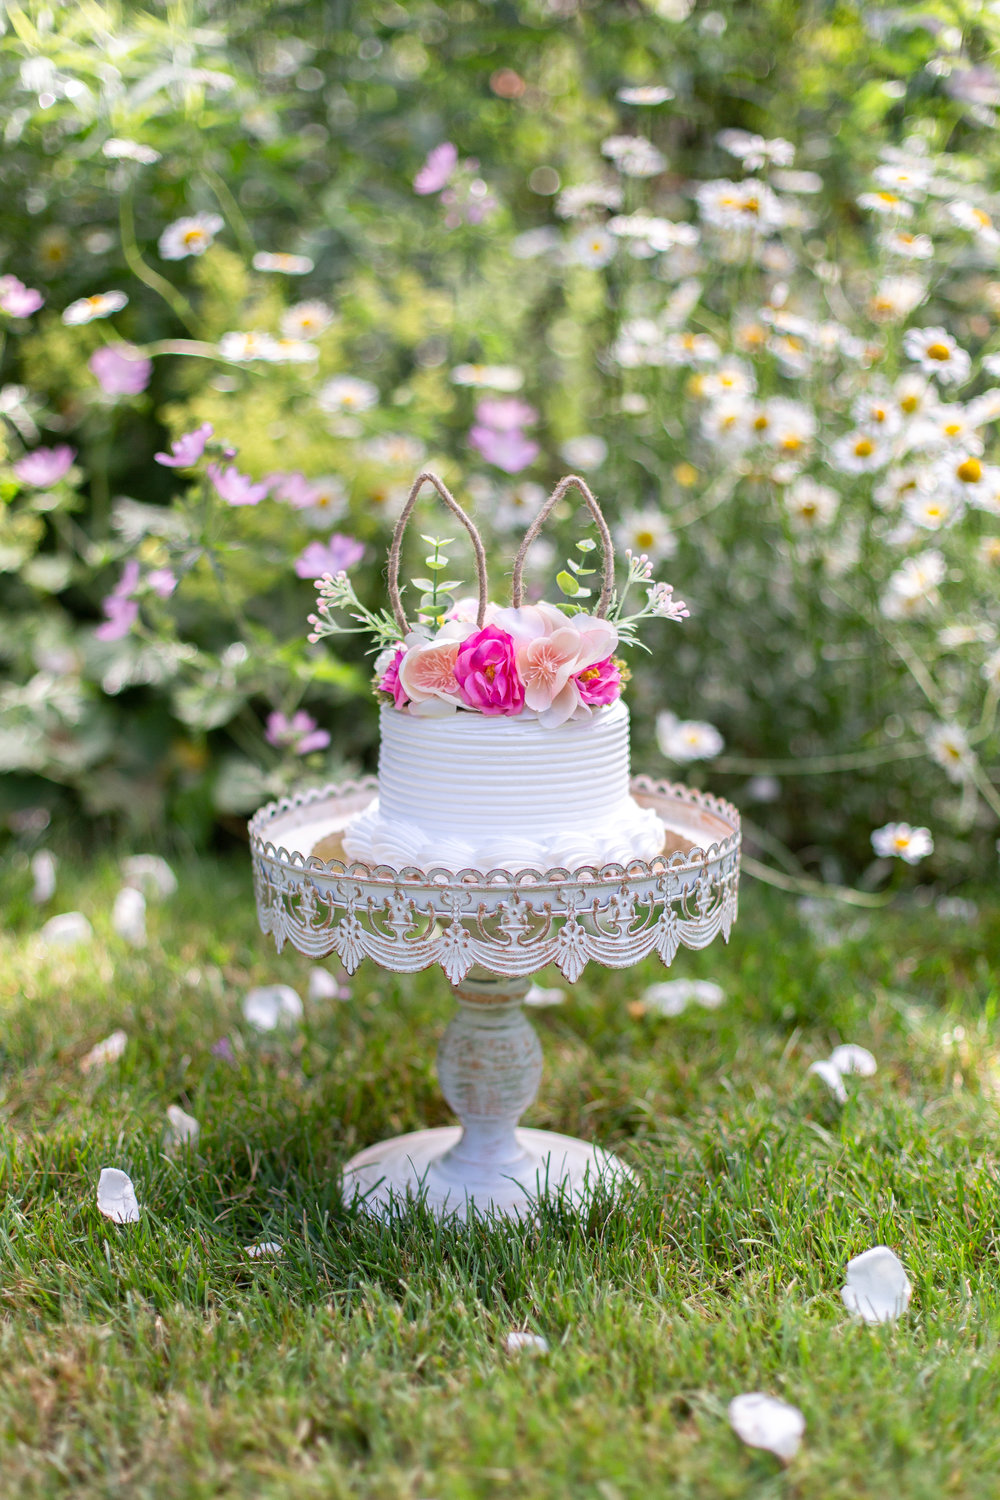 Birthday cake in Ringwood, New Jersey Botanical Garden.Photograph by Laughing Heart Photography.